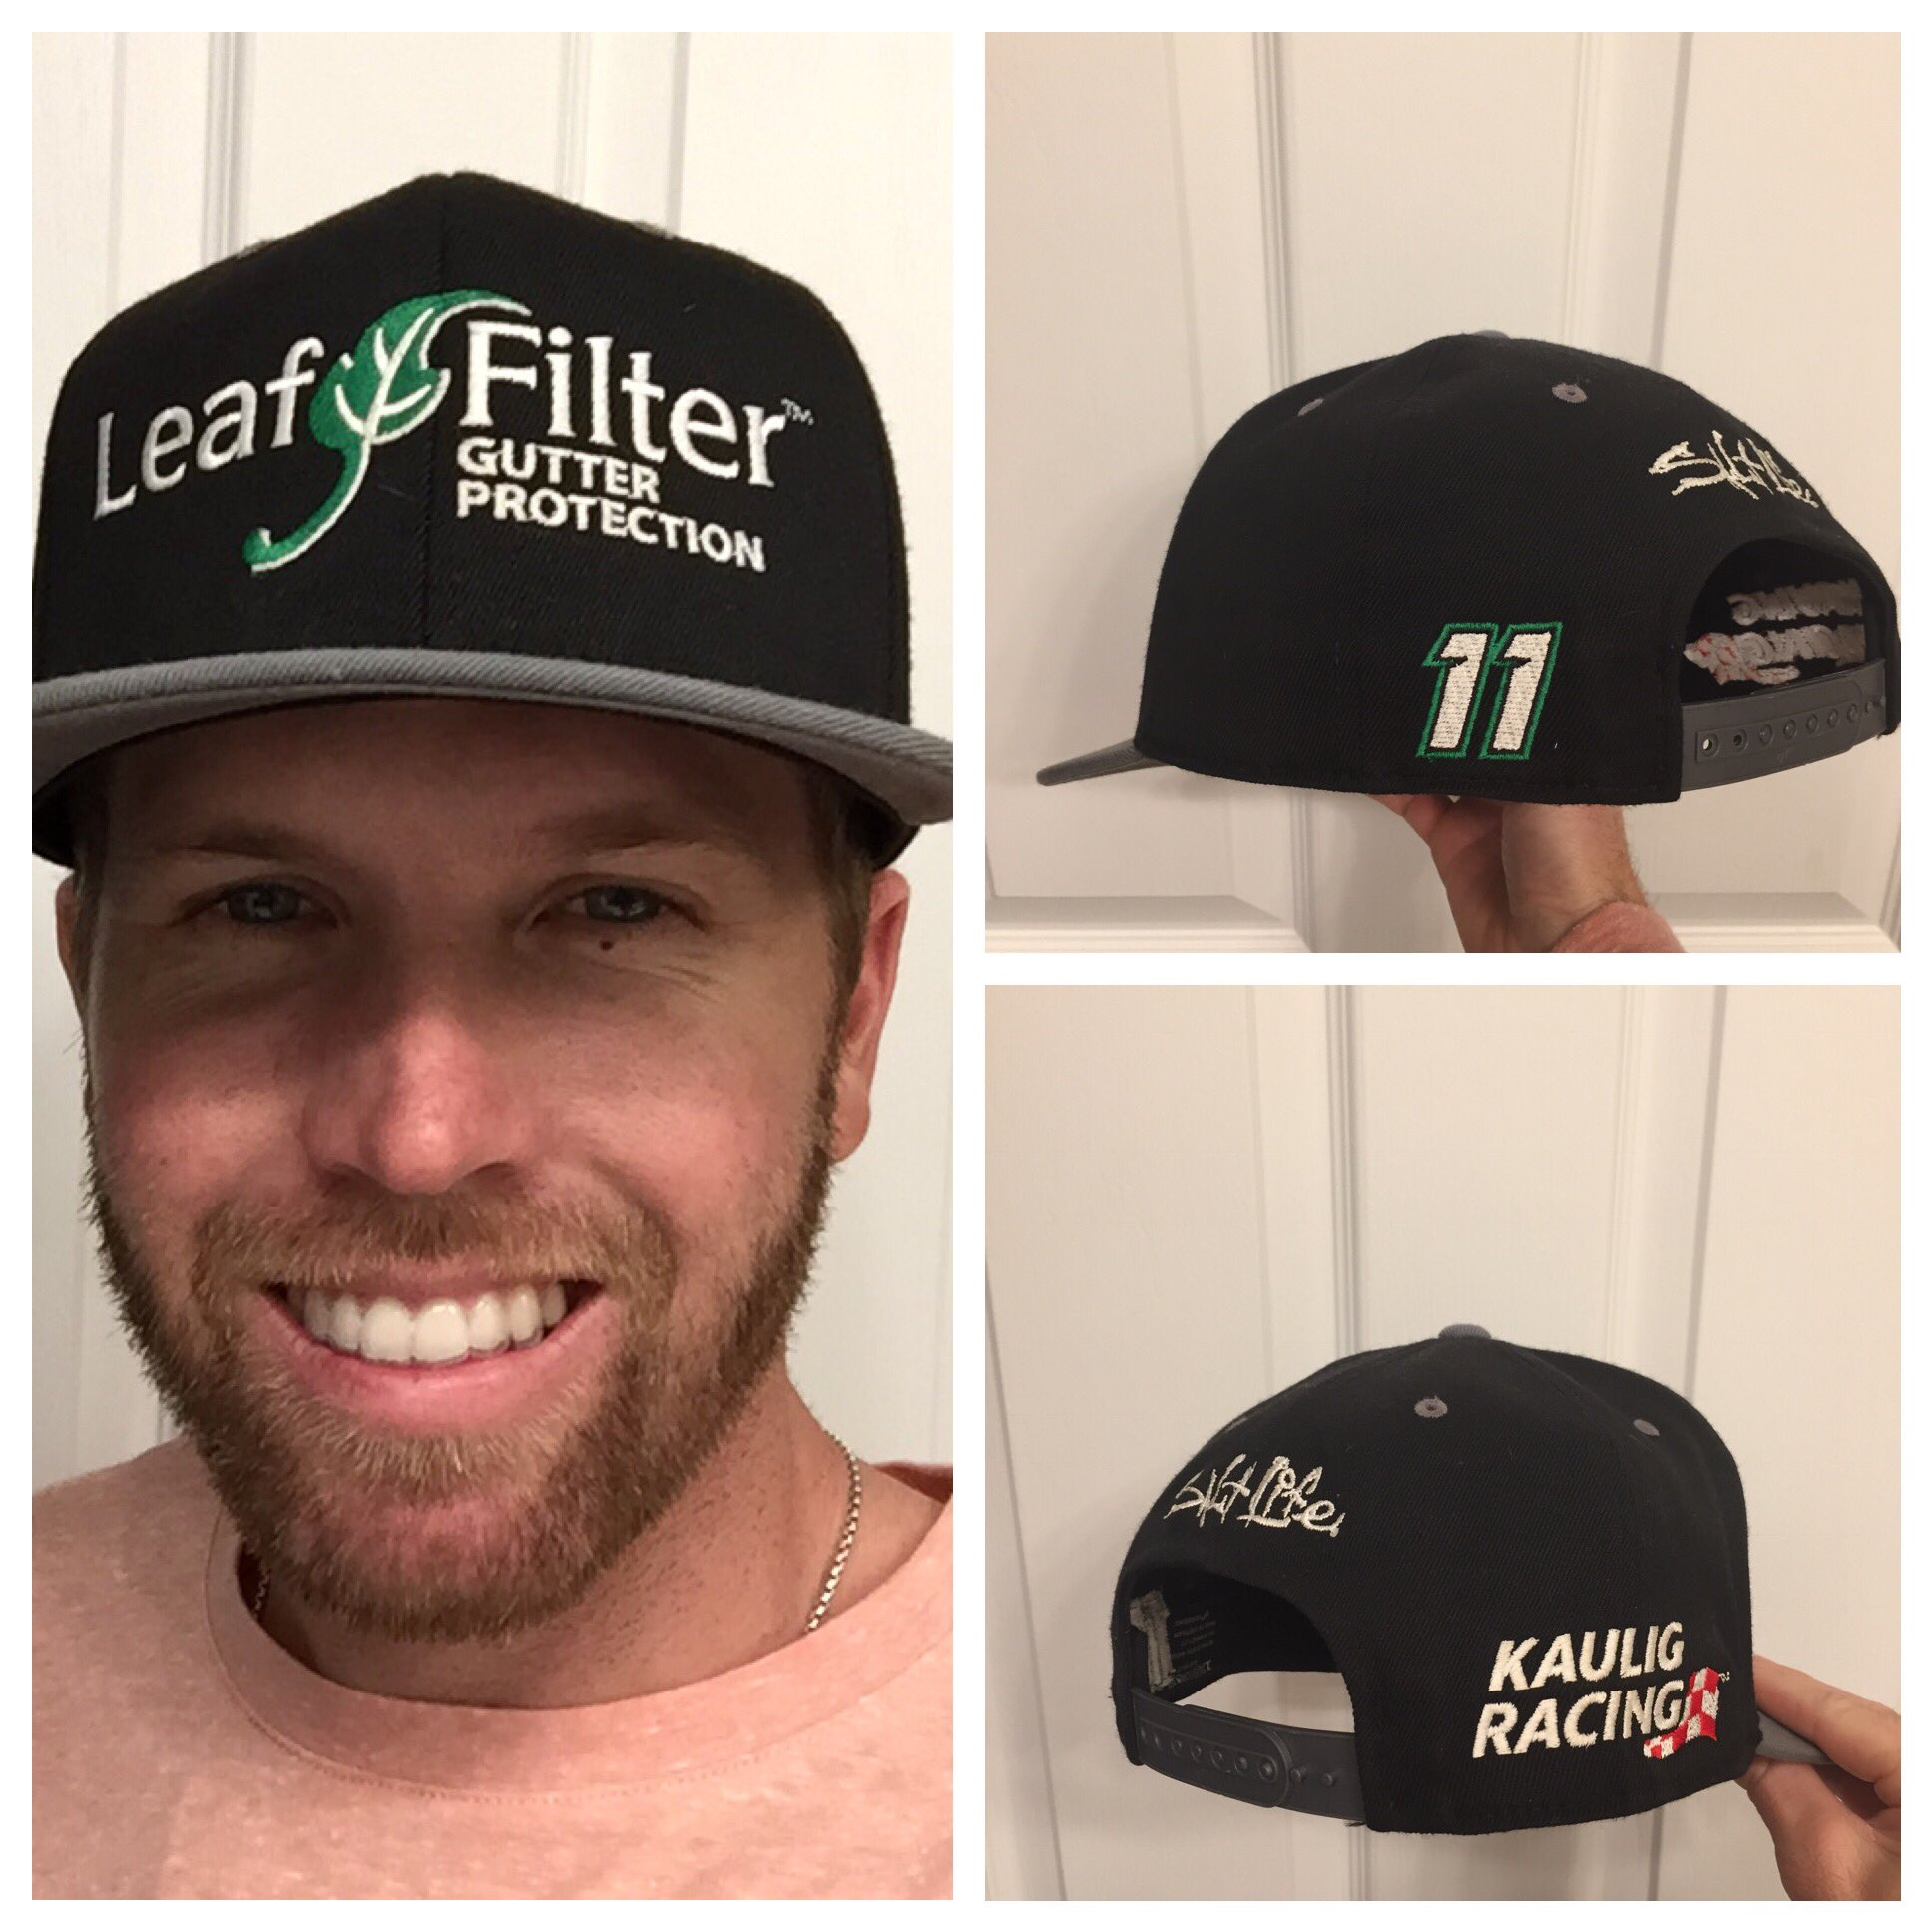 Since it's the 11th day of the month I will give away my hat!!! RT for a chance to win. https://t.co/Rhyp09iJvW